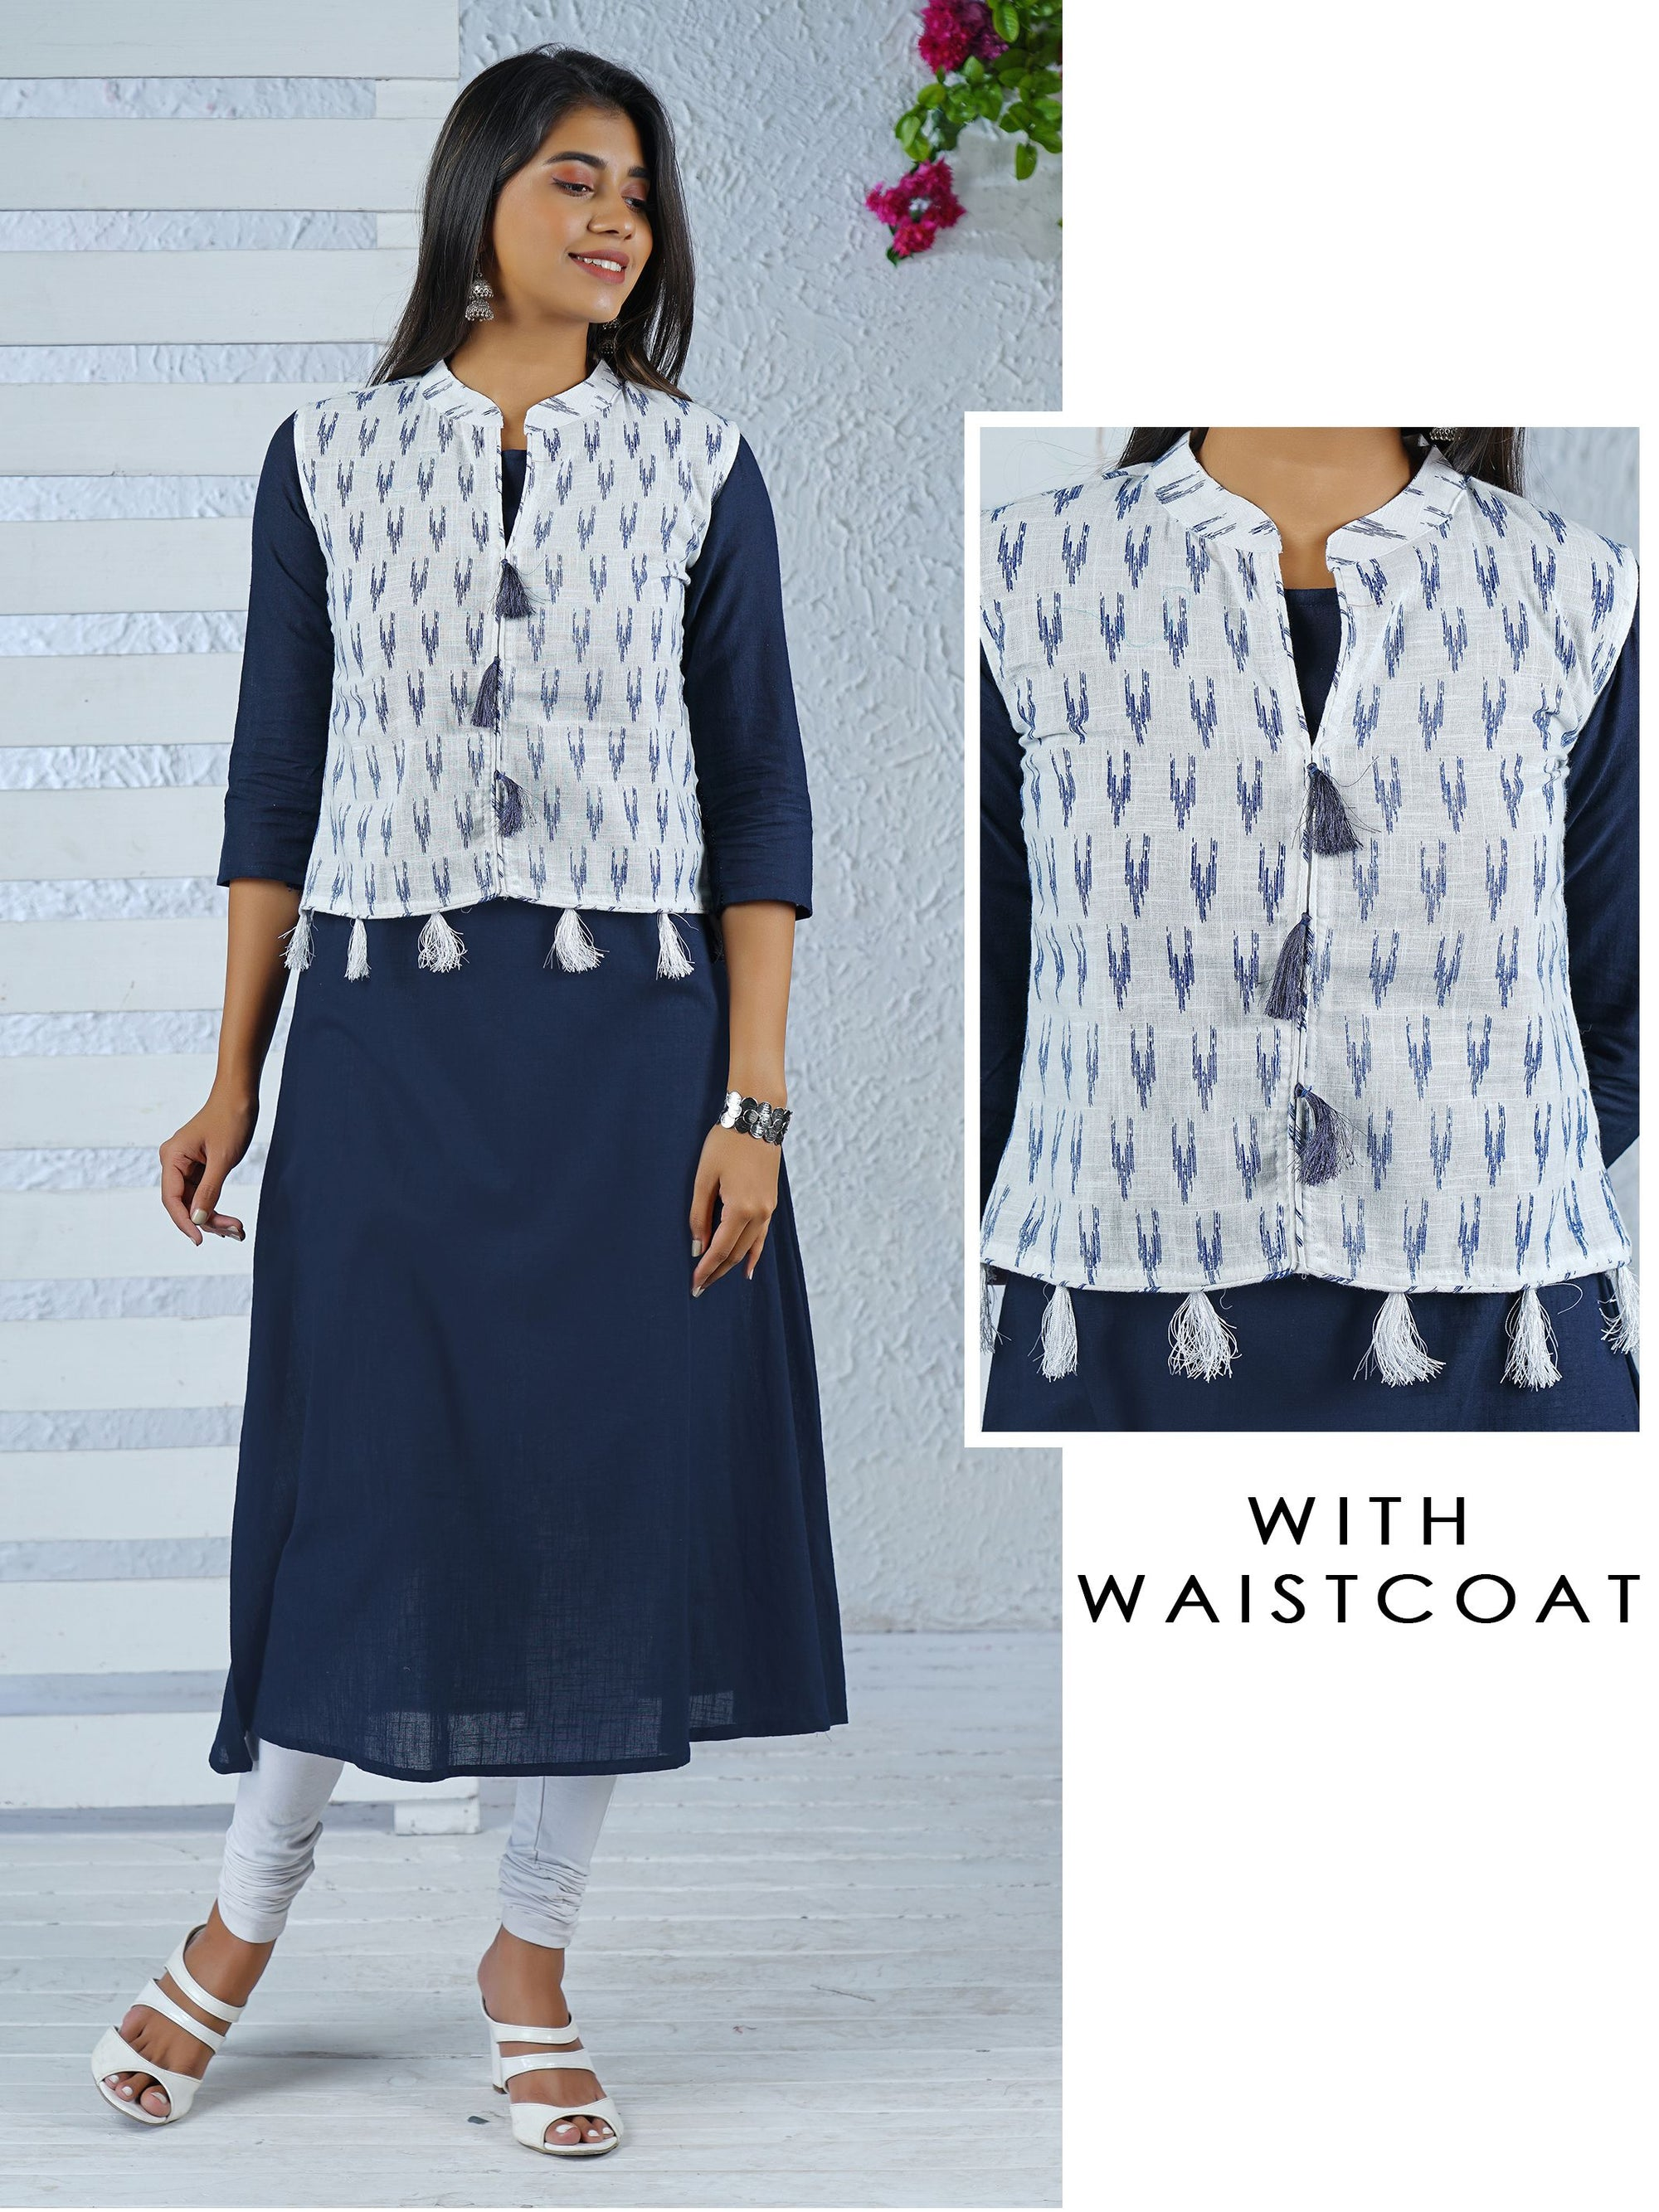 Solid Handloom Kurti with Ikkat Printed Waist coat